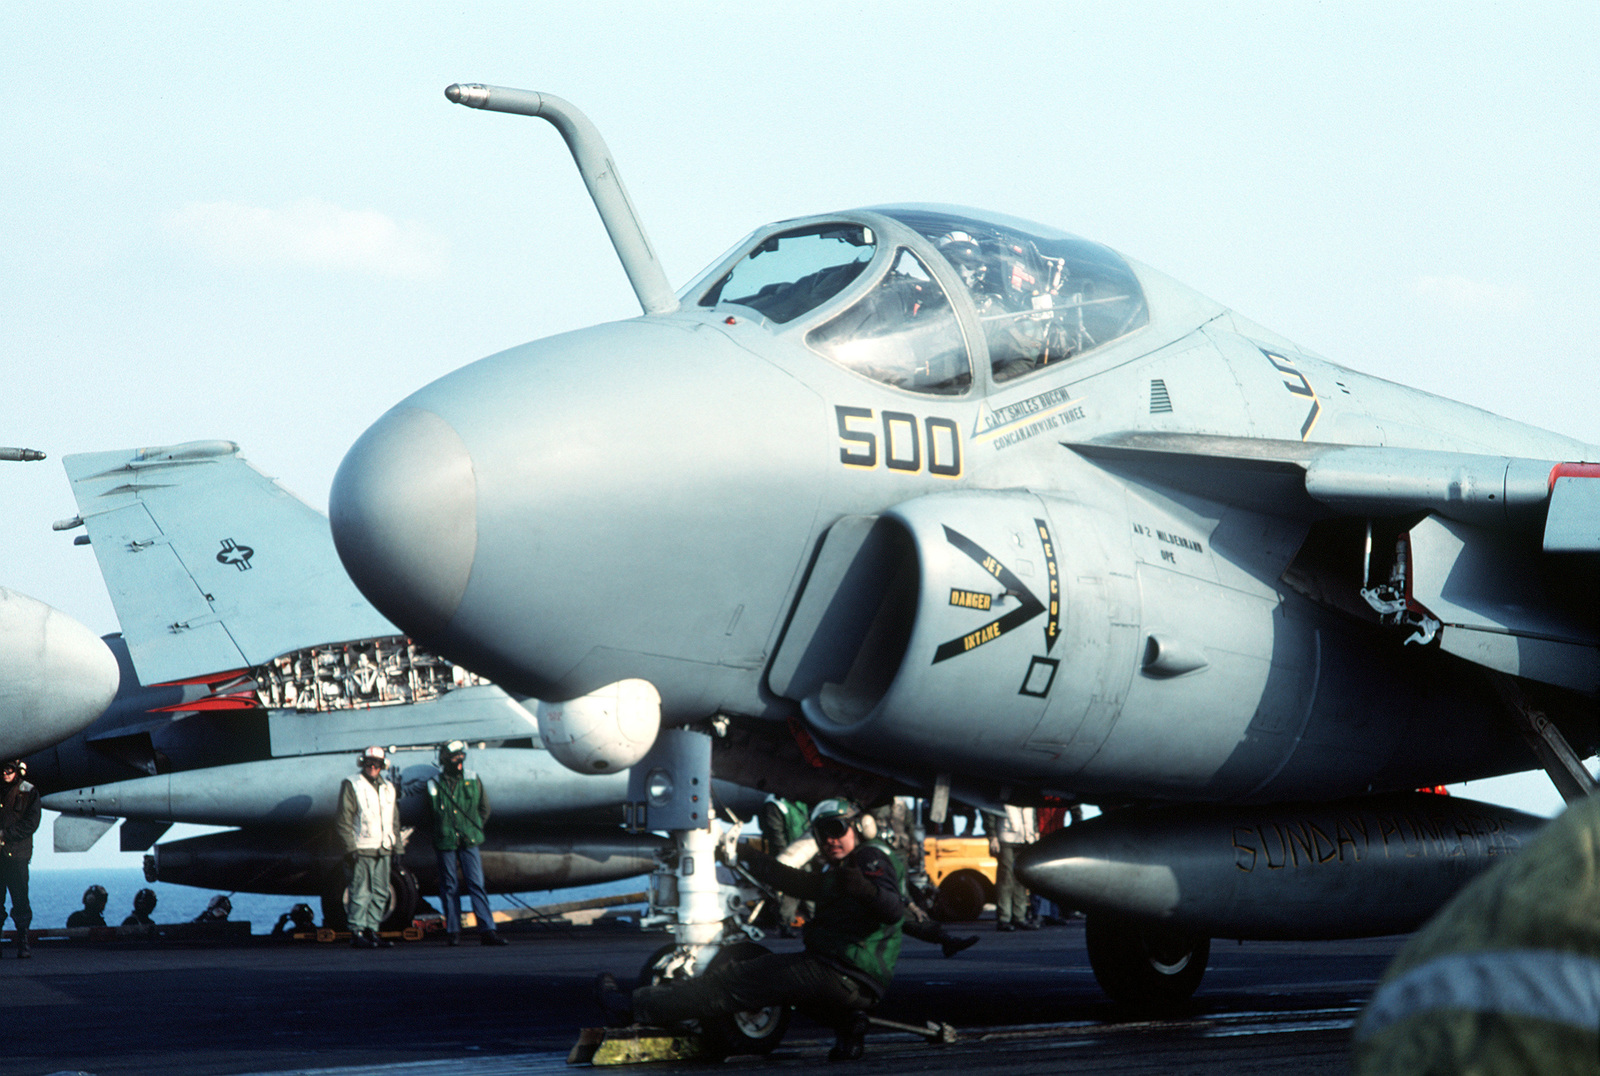 A member of the holdback/hookup crew signals to the catapult officer as the catapult crew prepares to launch an Attack Squadron 75 (VA-75) A-6E Intruder aircraft from the aircraft carrier USS JOHN F. KENNEDY (CV-67)